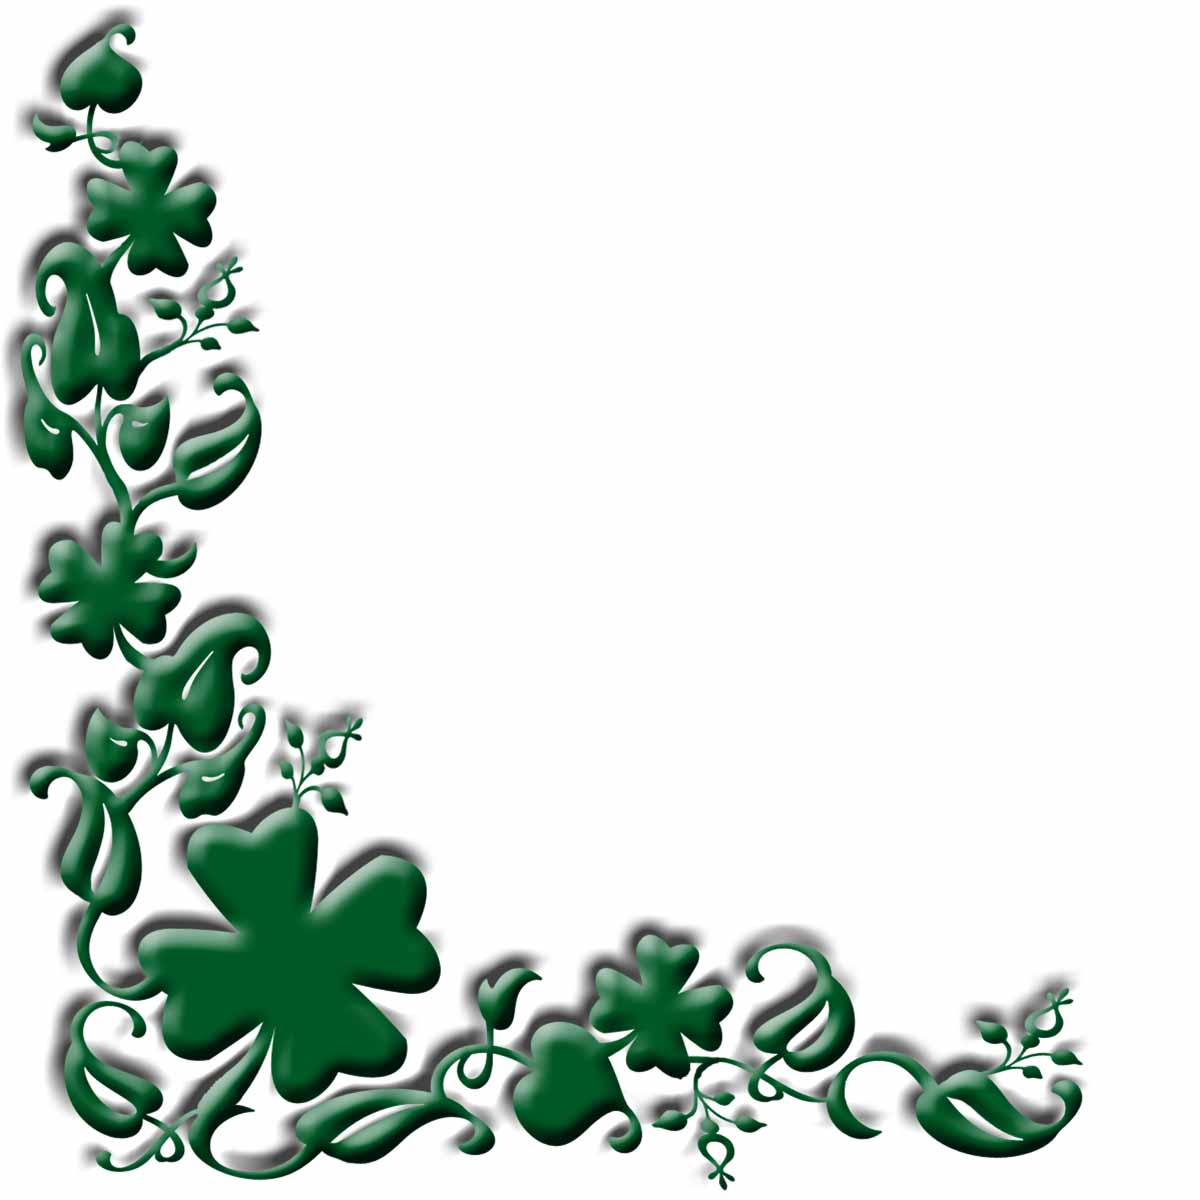 1200x1200 Four Leaf Clover Clipart Free Images